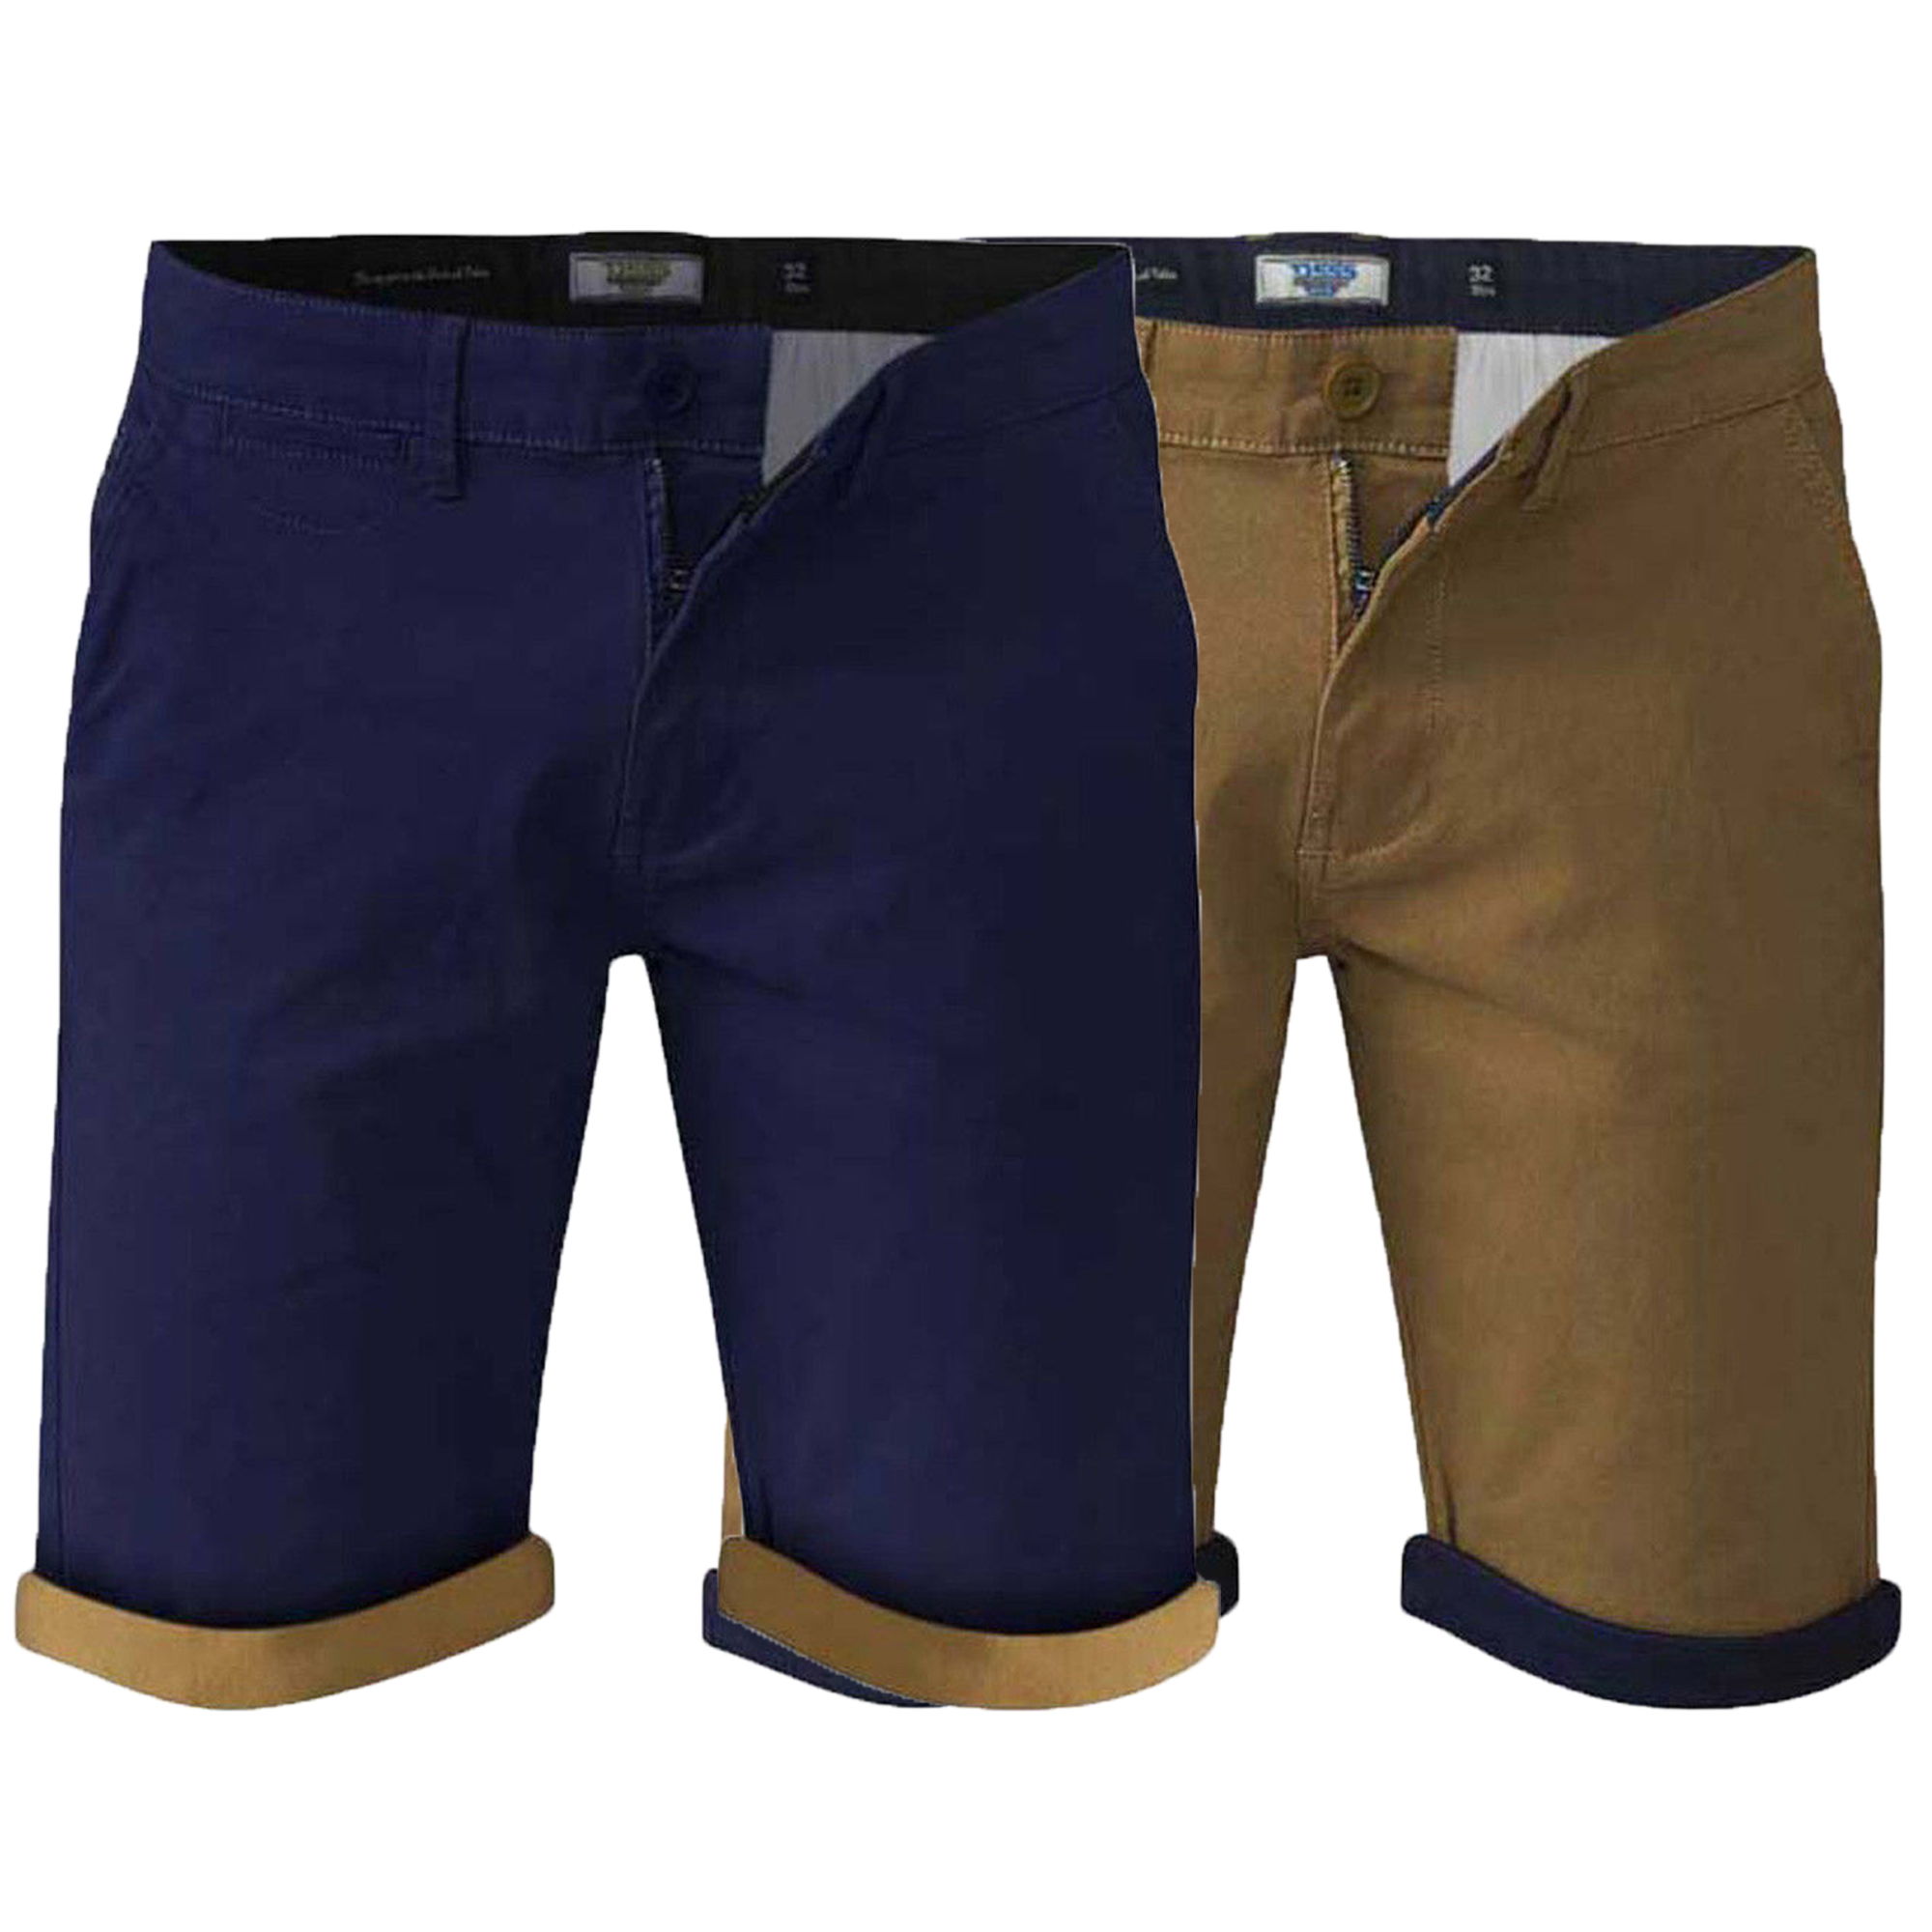 8b67141d70e Details about Mens Chino Shorts D555 Duke Big King Size Morgan Roll Up Knee  Length Summer New